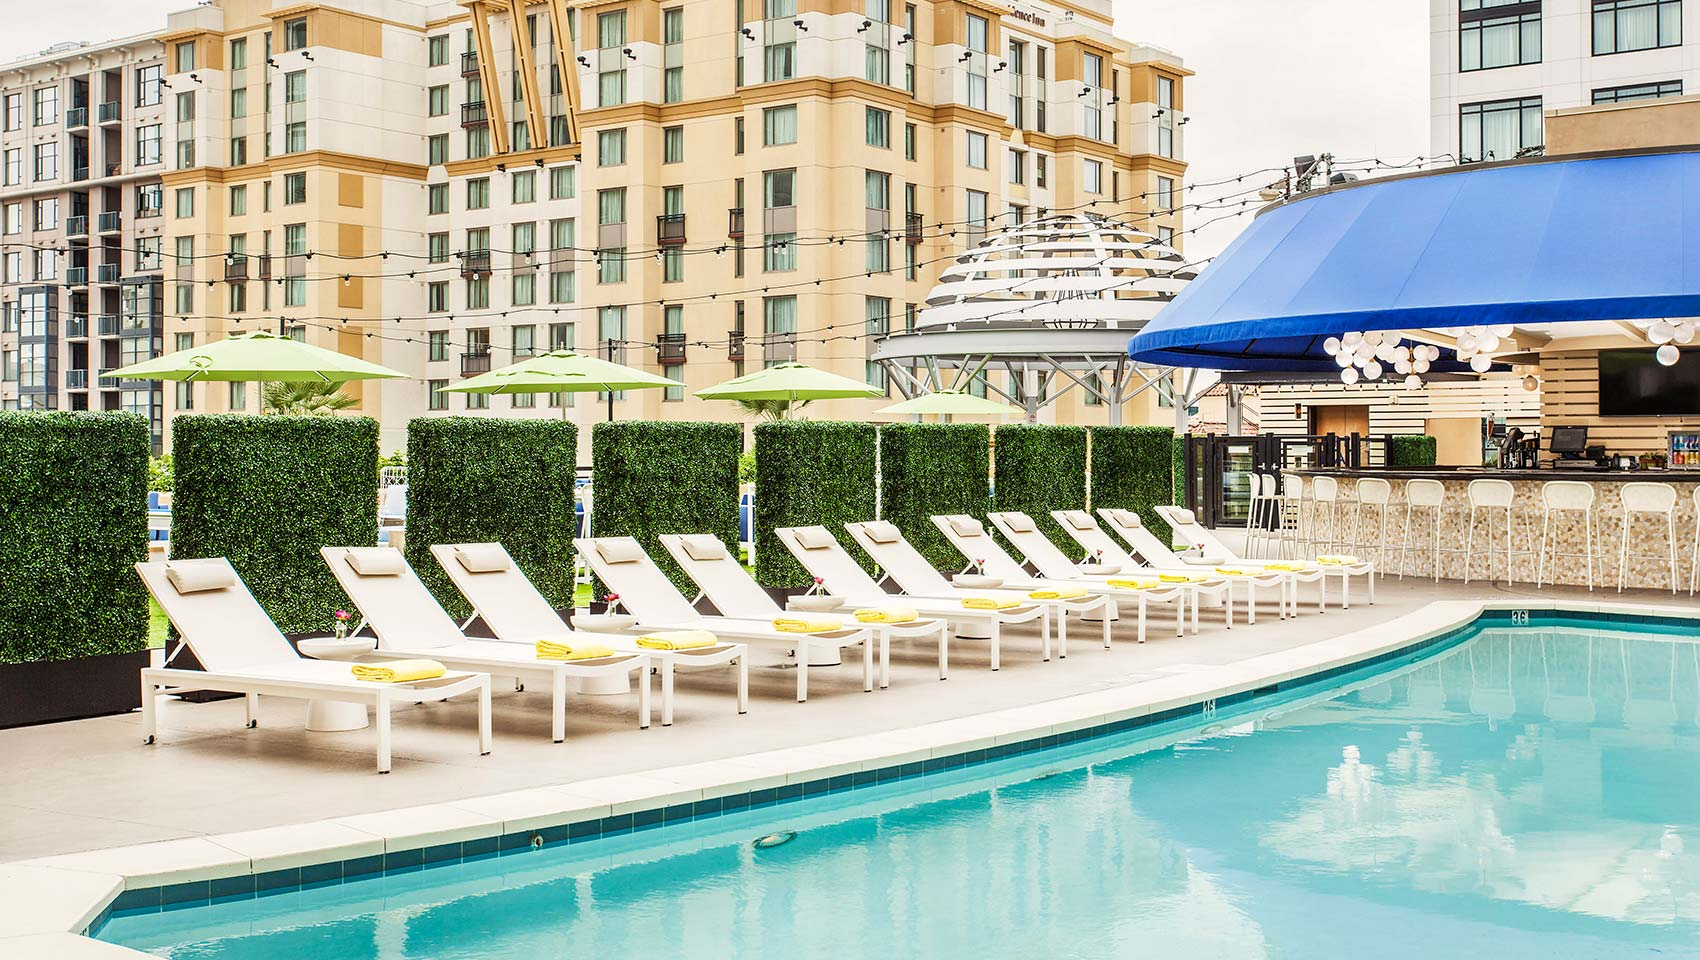 Amenities - The hotel features a pool, Complimentary WiFi, a Wine Happy Hour from 5 - 6PM + a Coffee/Tea in mornings!